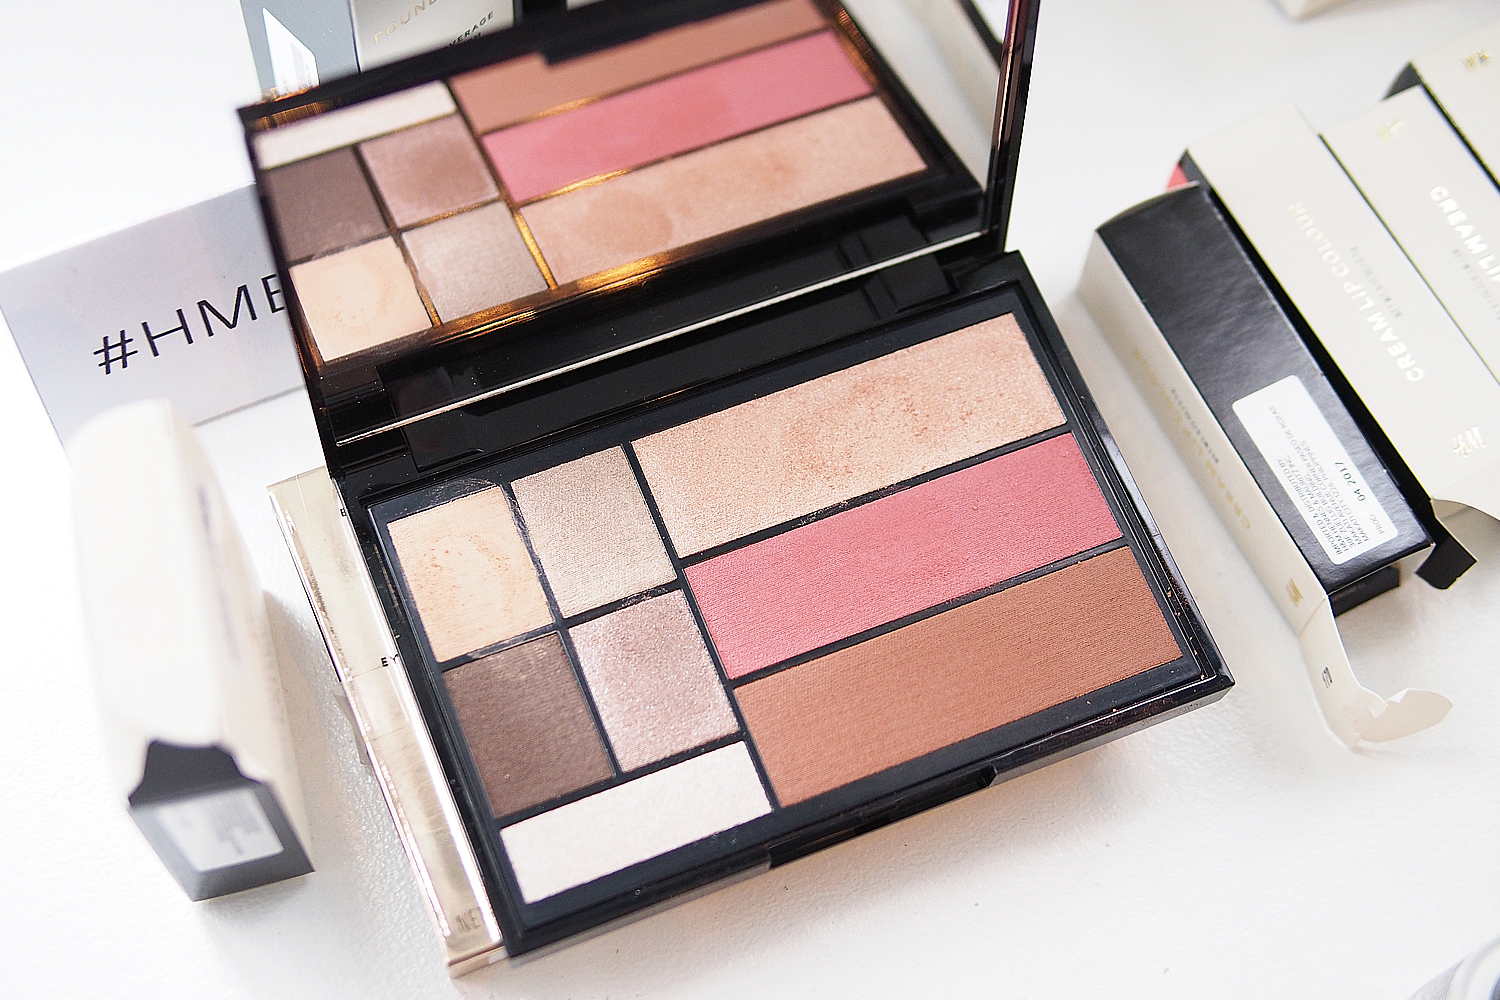 Here's what to expect from H&M Beauty, which launches tomorrow